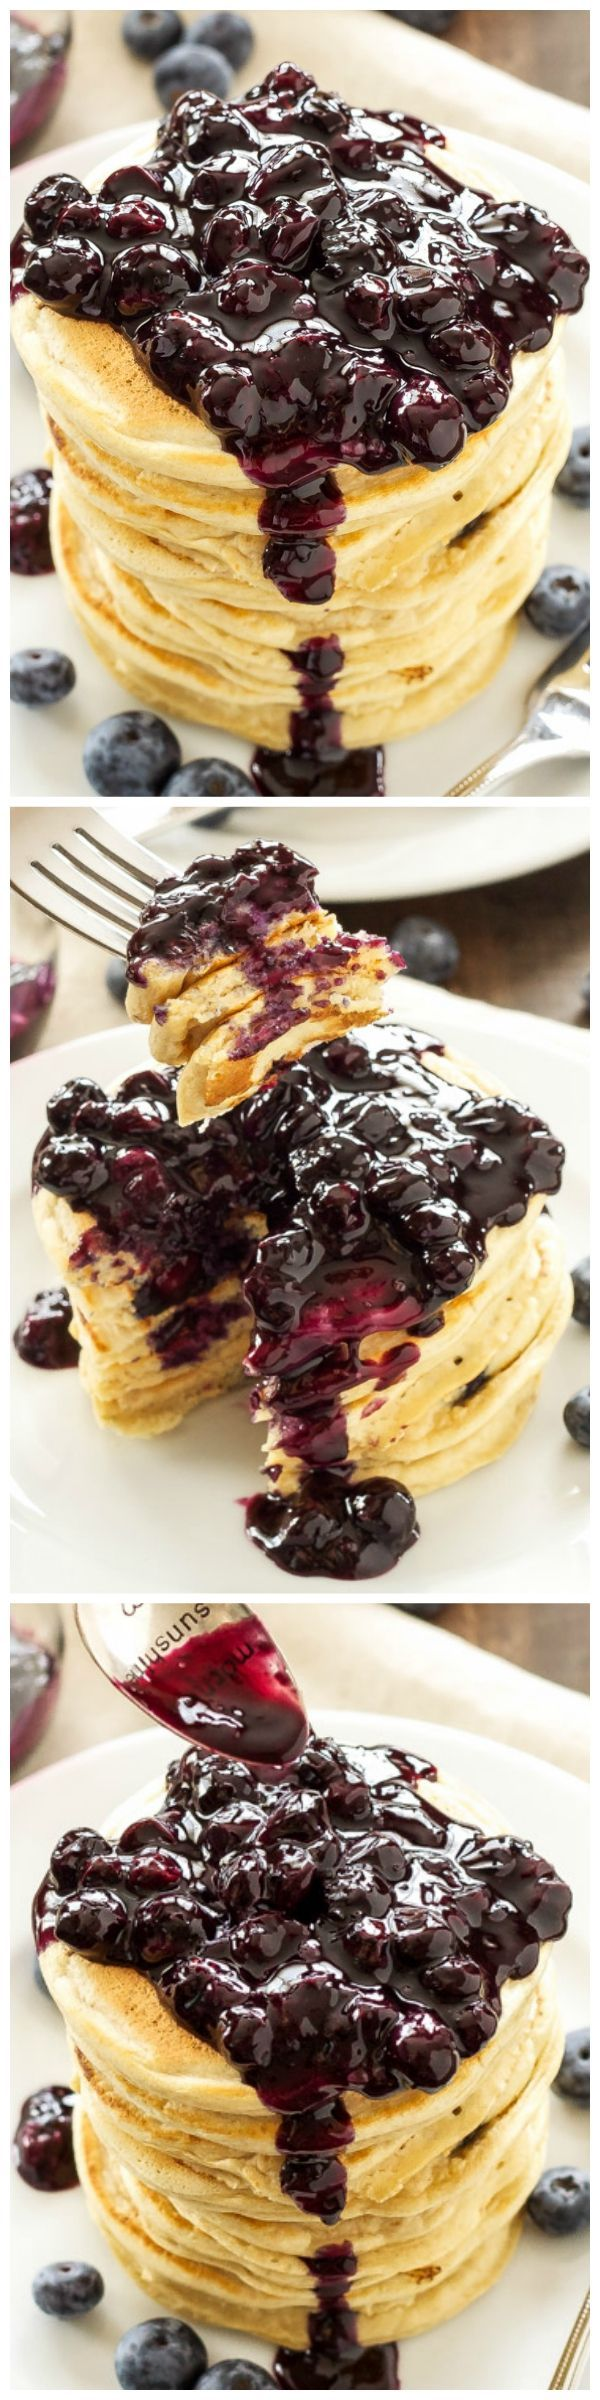 Blueberry Vanilla Protein Pancakes - Delicious whole wheat pancakes with added protein thanks to vanilla protein powder. Top them with a fresh blueberry sauce for a protein packed power breakfast!